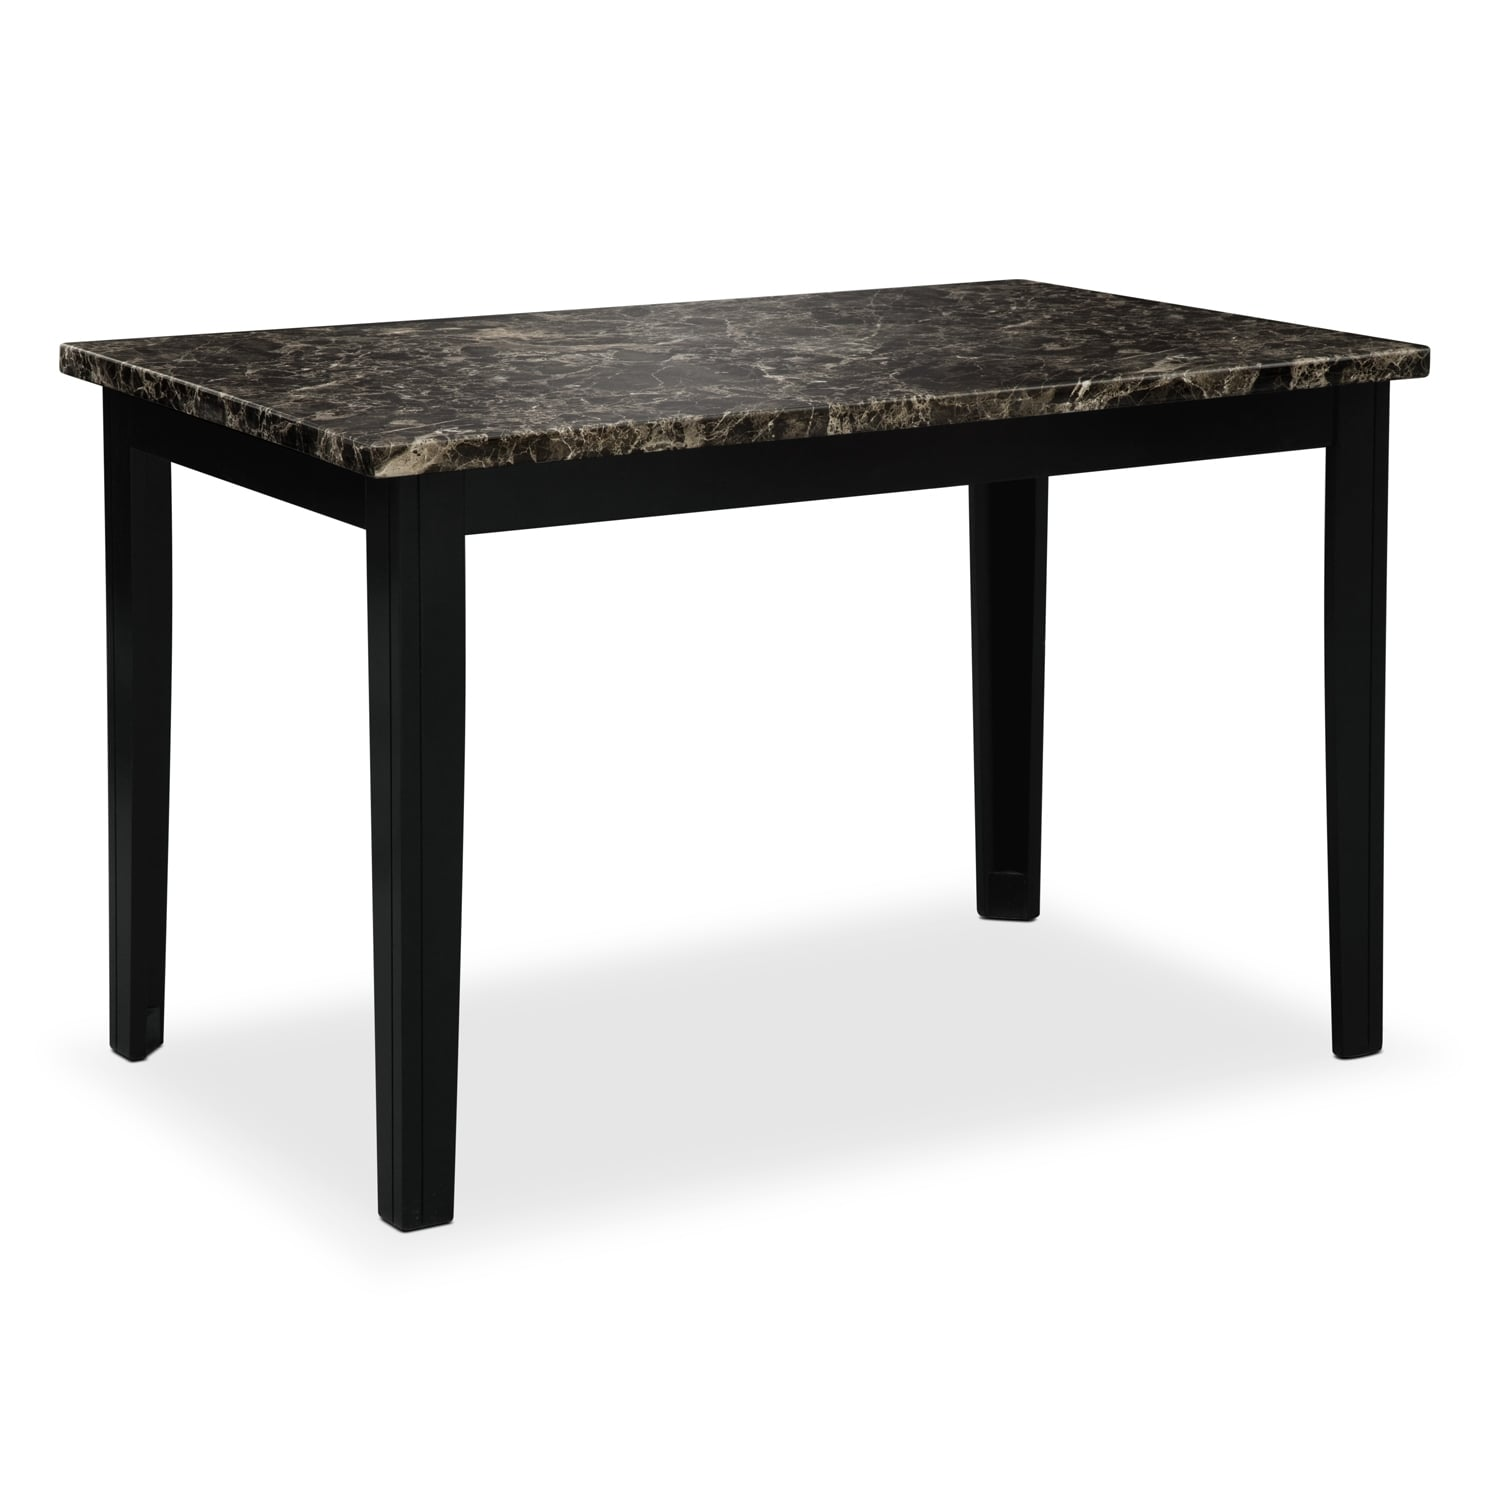 Shadow Dining Table - Black